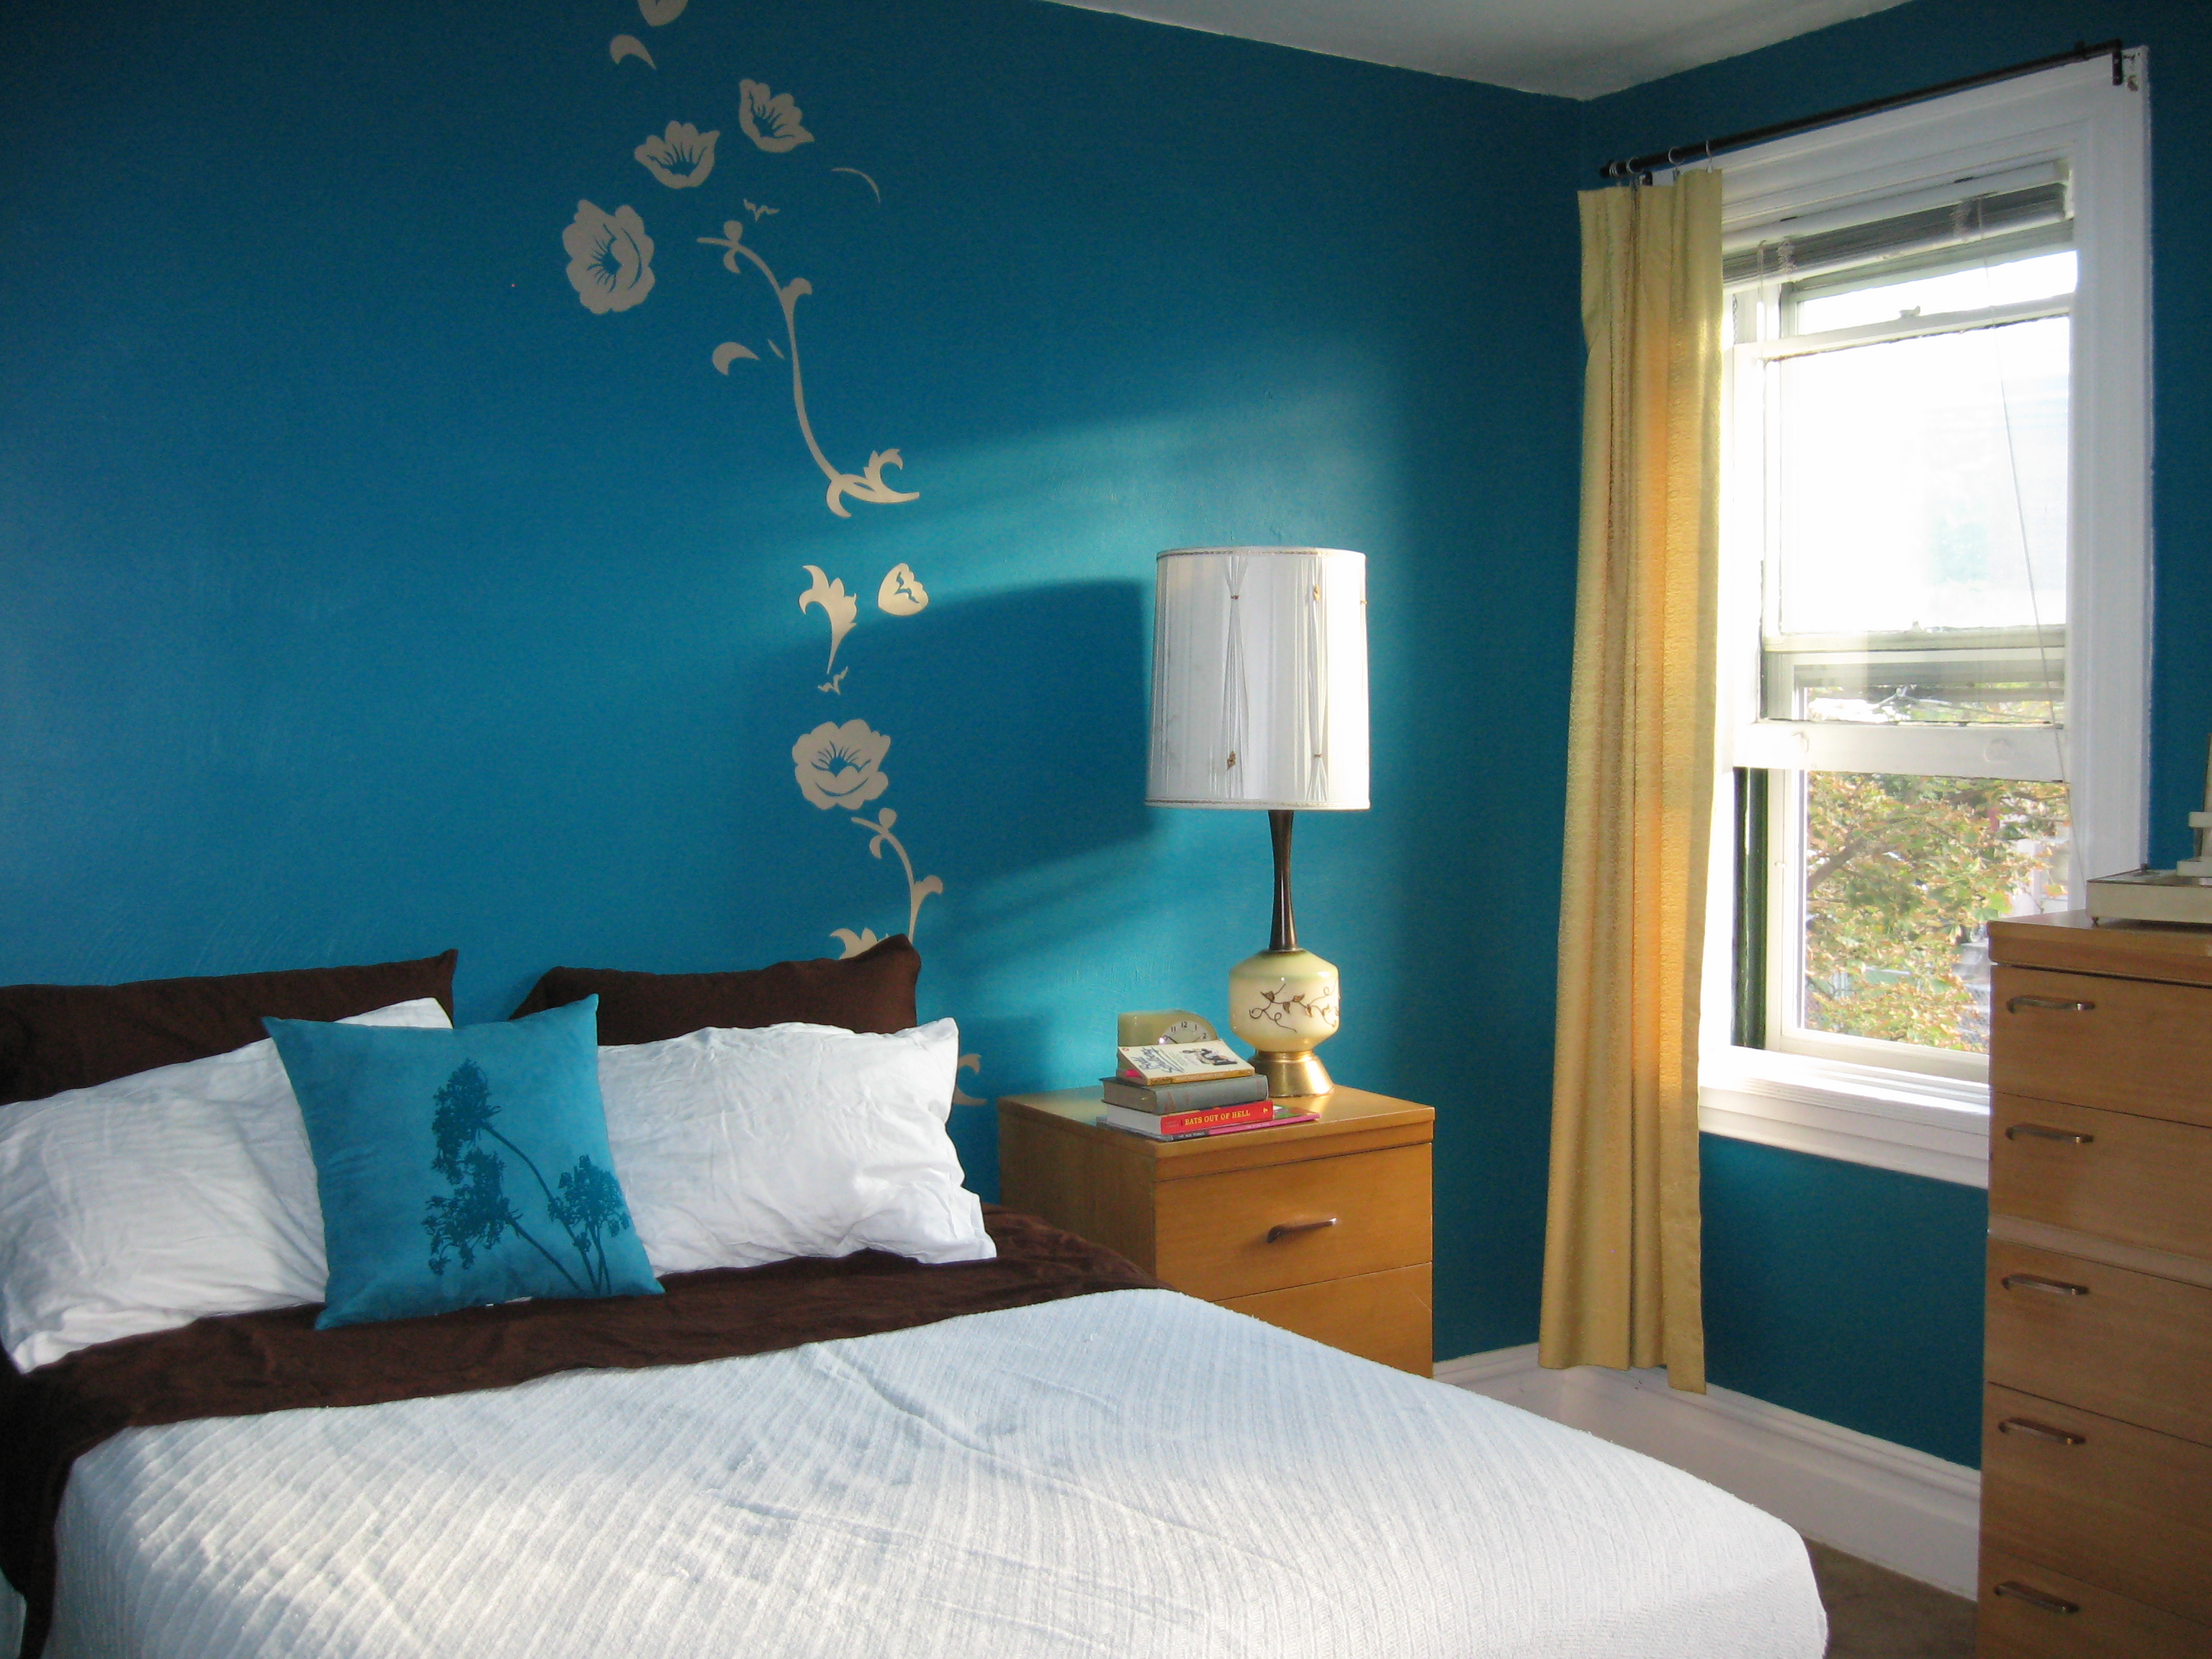 Budget friendly ideas for a fabulous bedroom makeover my for Apartment therapy bedroom ideas